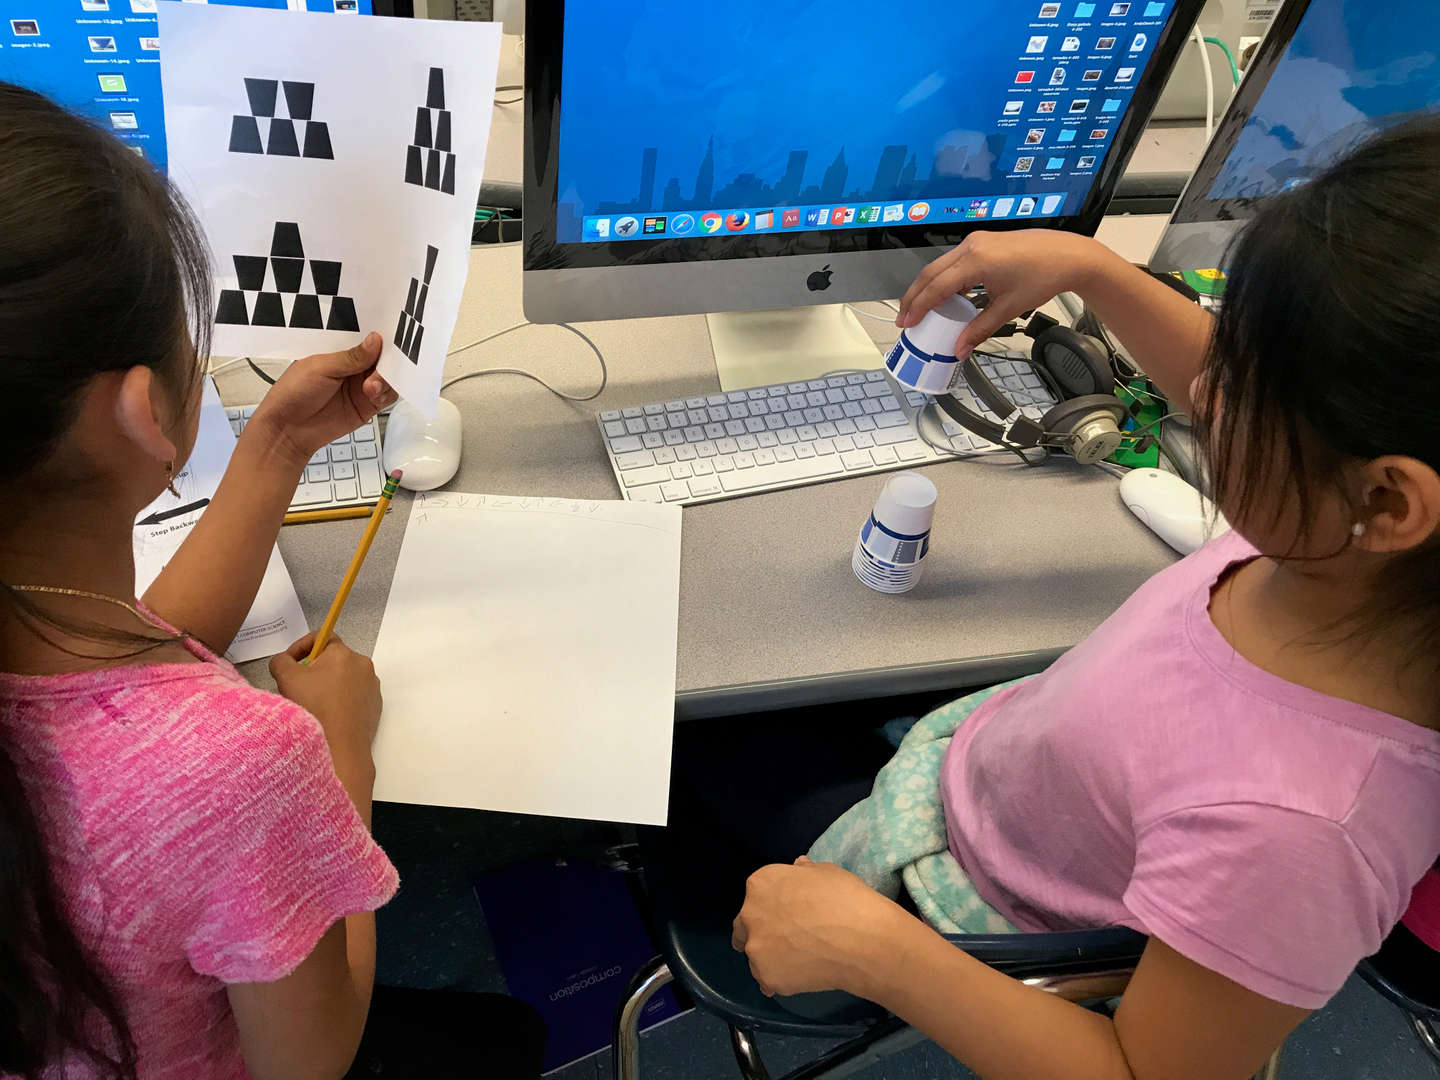 2 girls are sharing how to position the cups